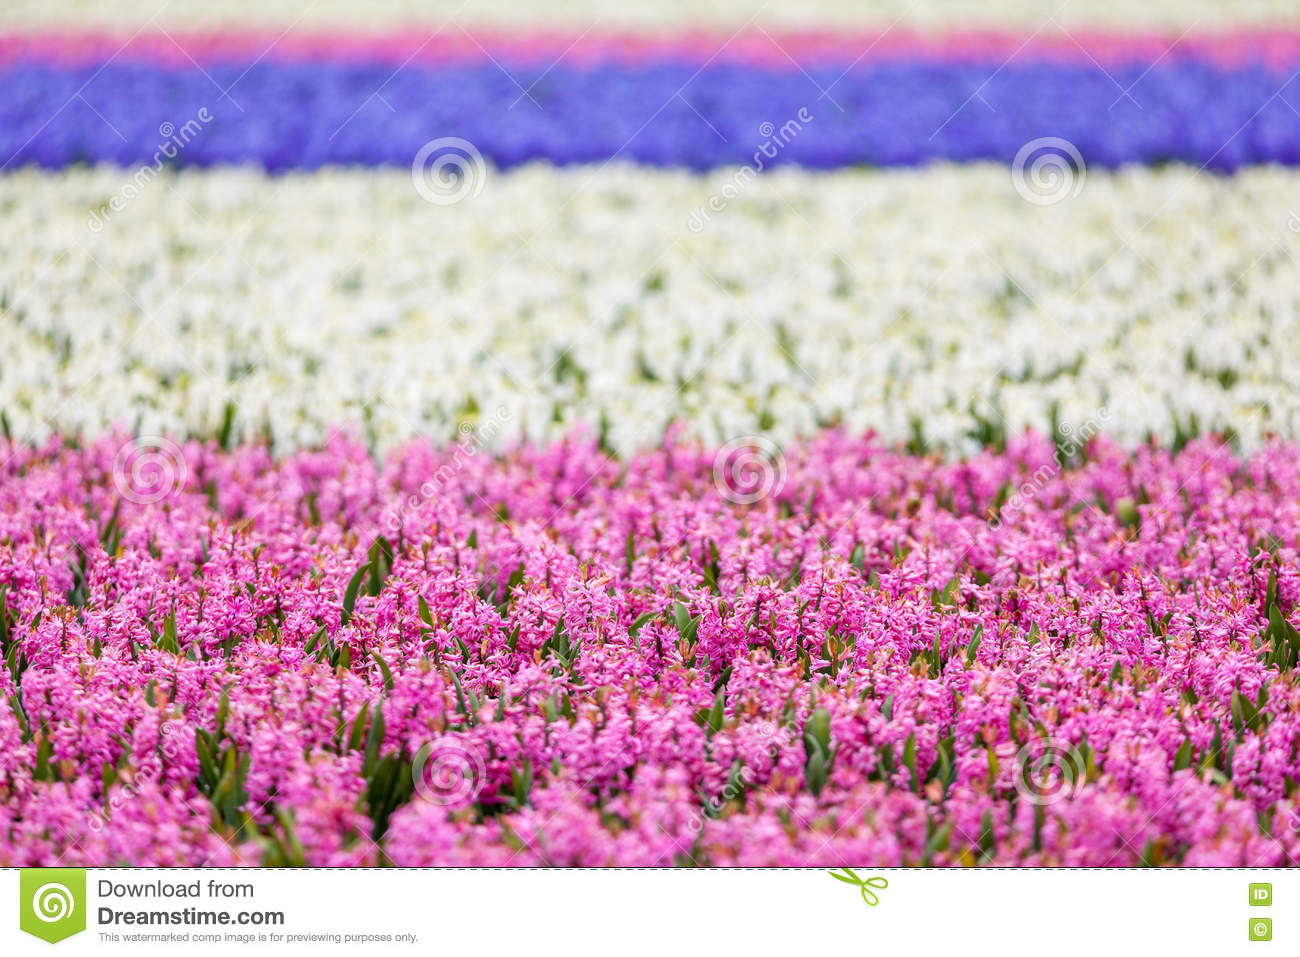 Hyacinth Beautiful Colorful Pink Blue And White Hyacinth Flowers - Colorful flower garden background